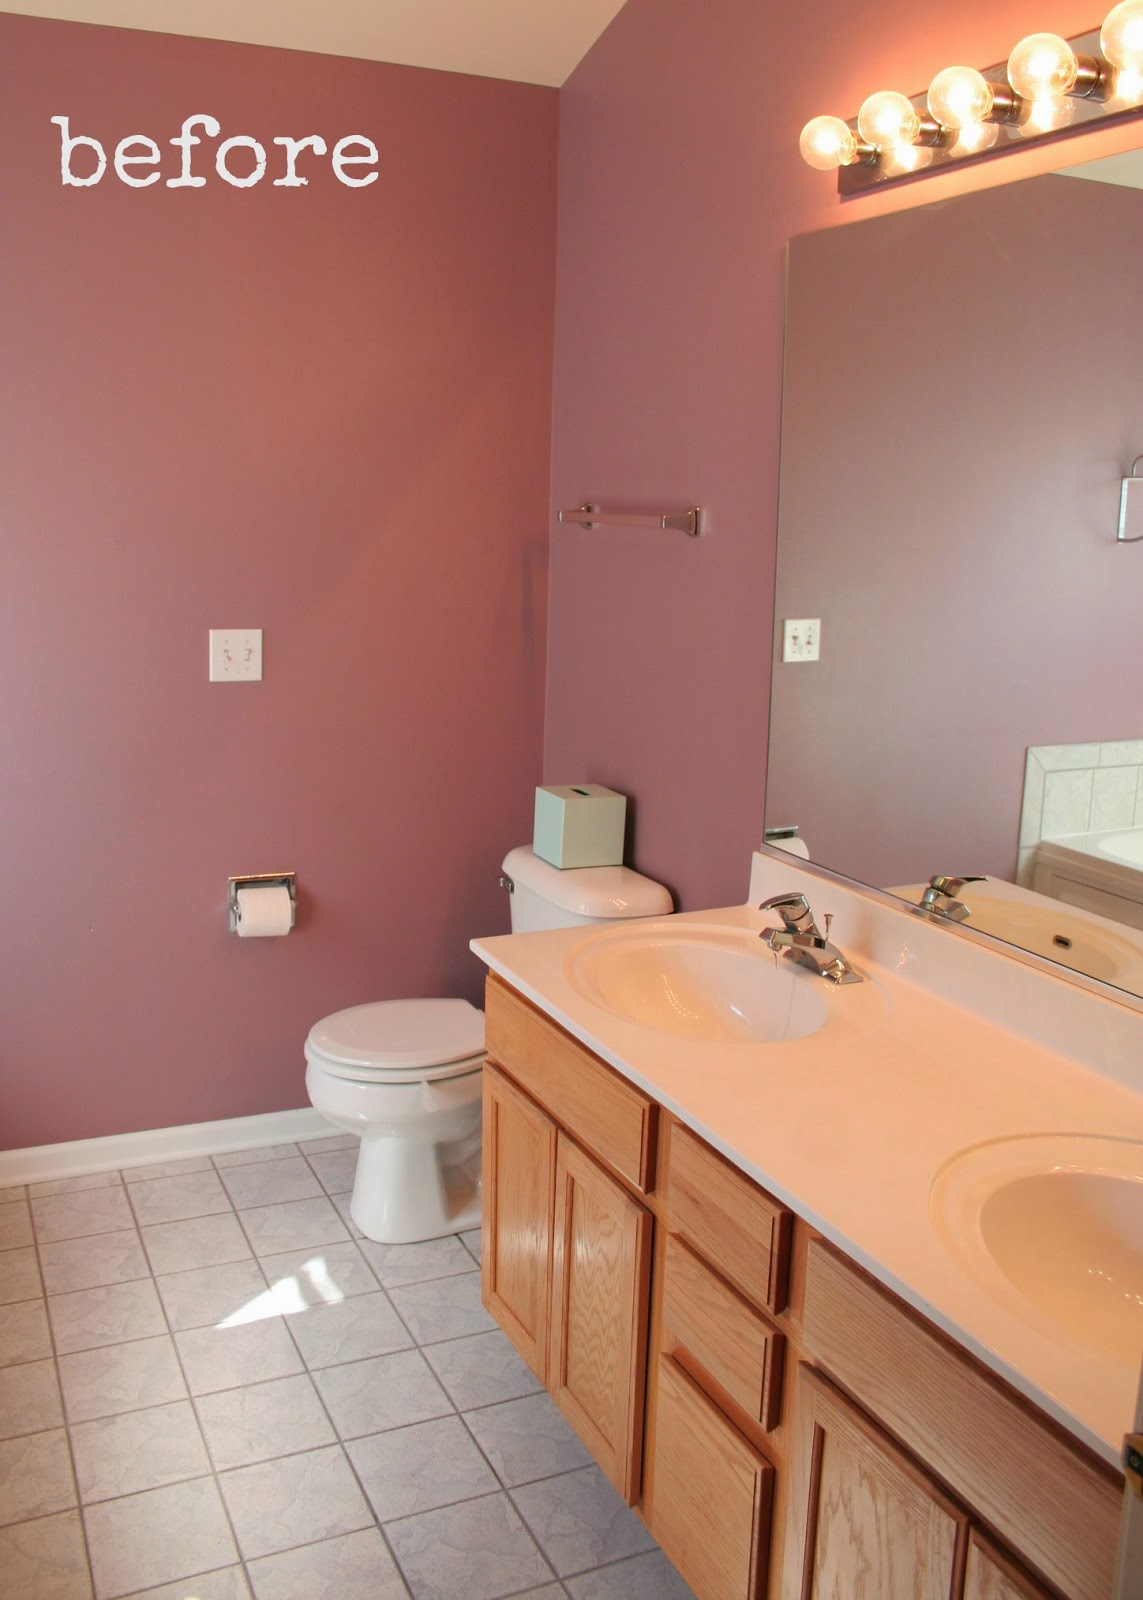 Do it yourself bathroom remodel ideas at home and interior for Do it yourself bathroom remodel